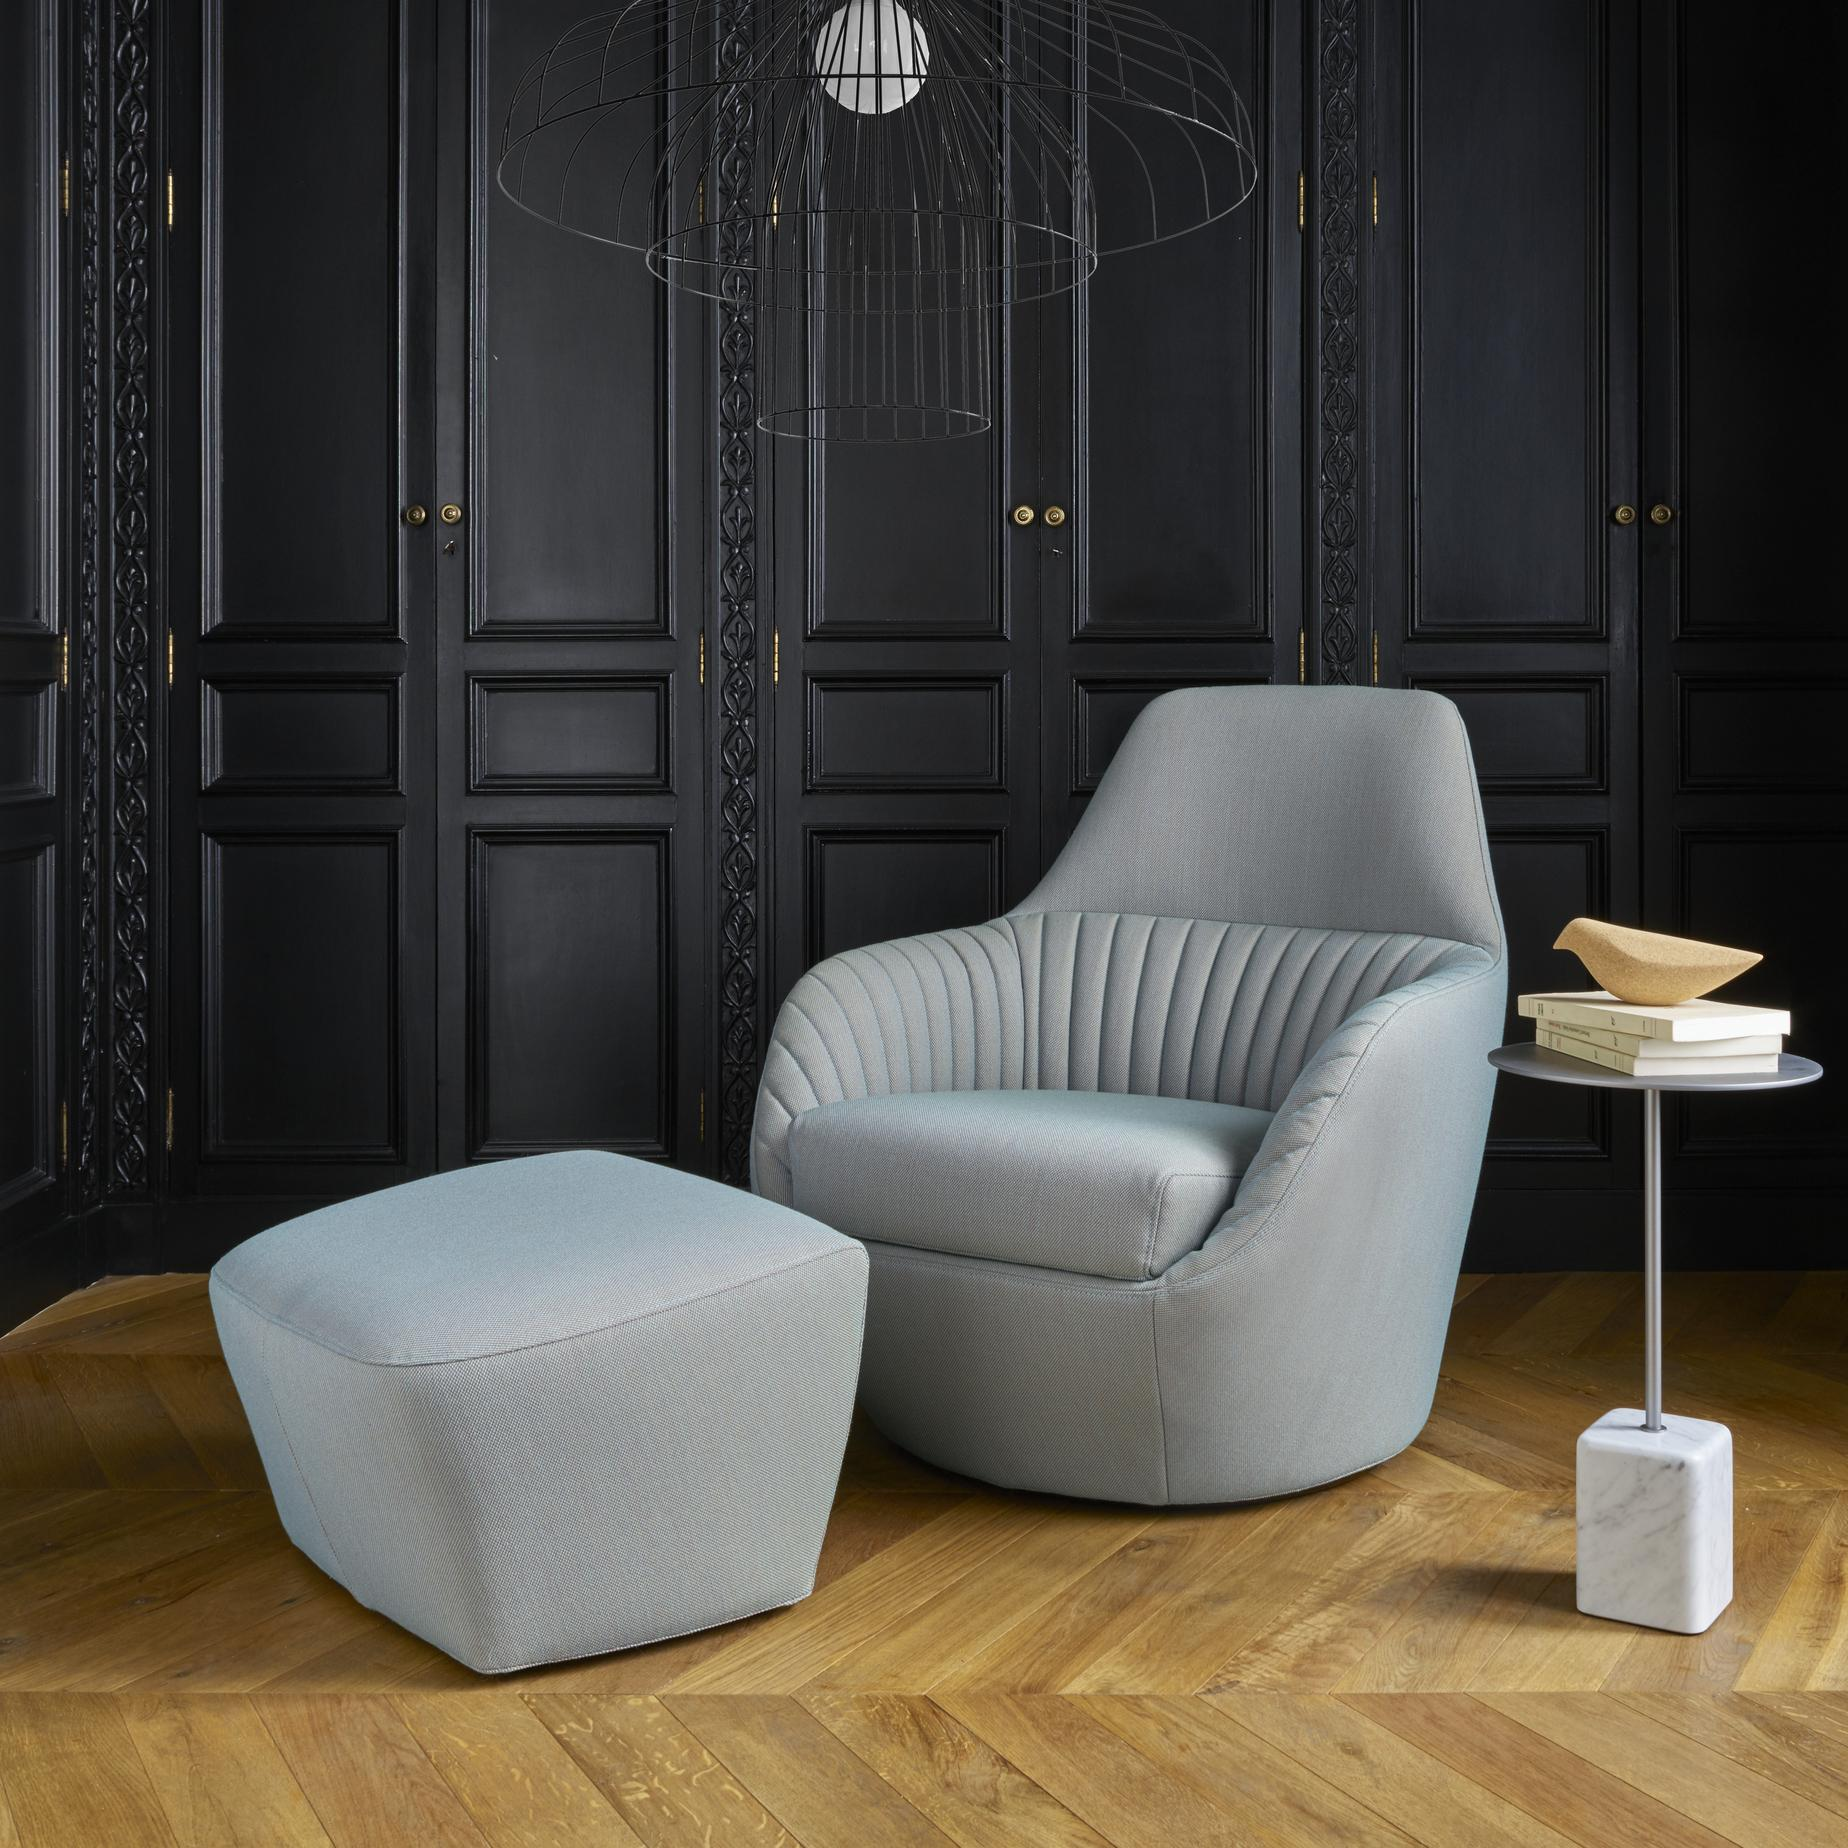 Am D E Armchairs Designer Marie Christine Dorner Ligne Roset # Muebles City Club